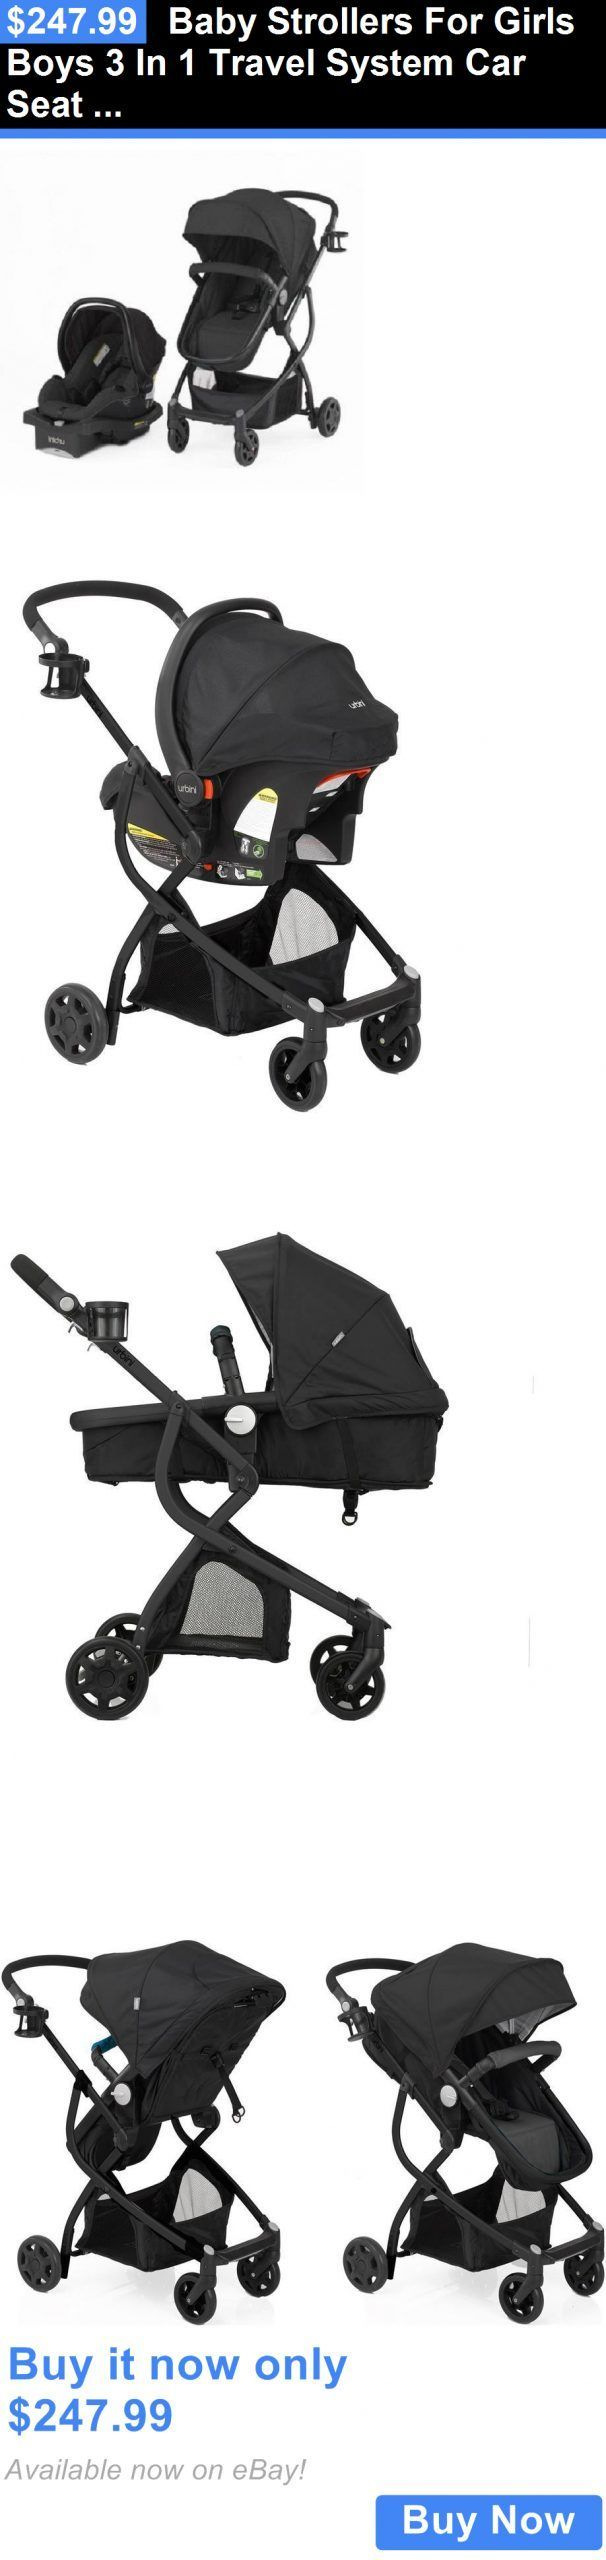 baby and kid stuff: Baby Strollers For Girls Boys 3 In 1 Travel System Car Seat ...